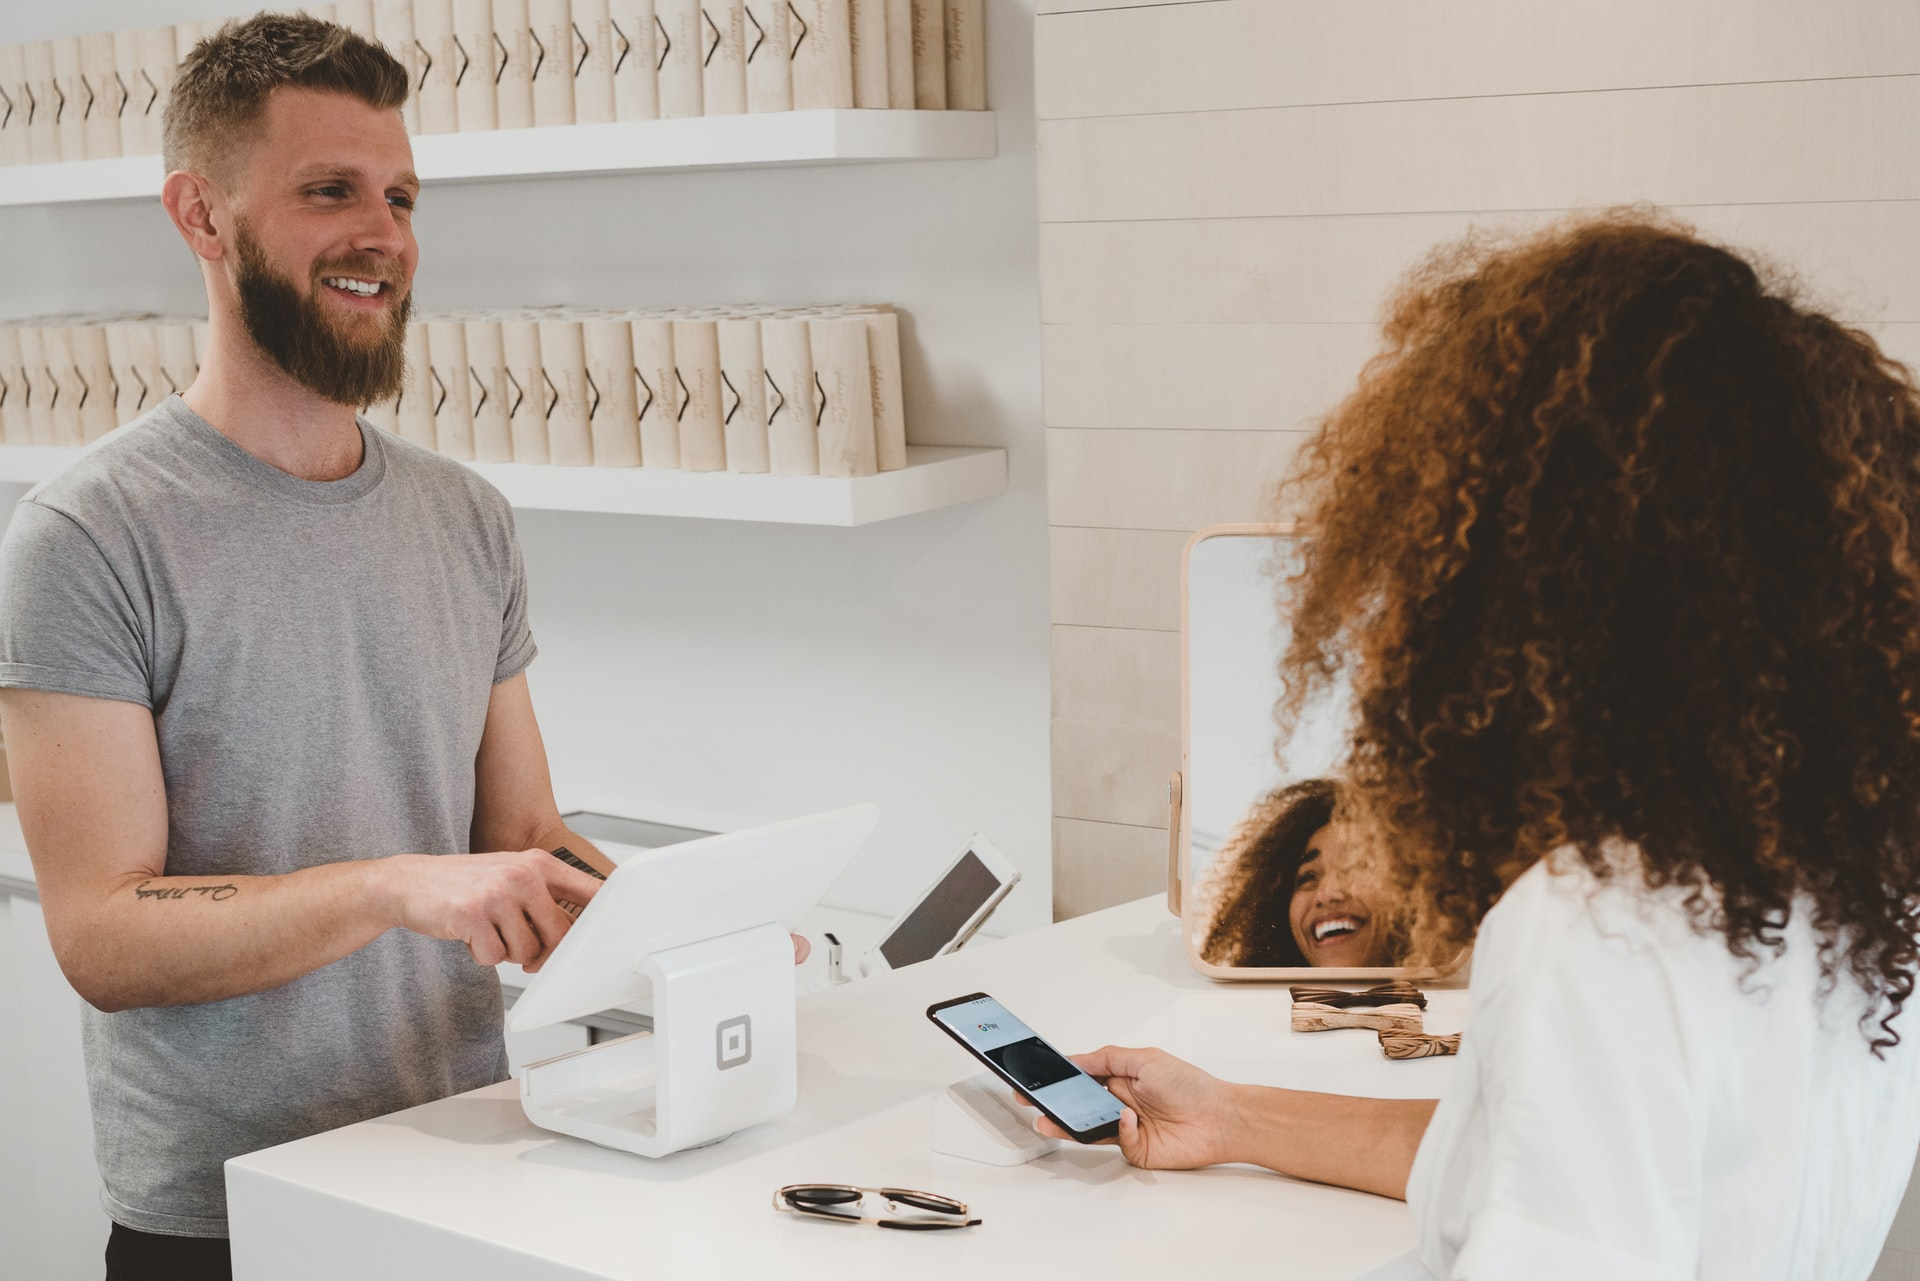 The New Era of Business: Pro Tips for Building Strong Consumer Relationships